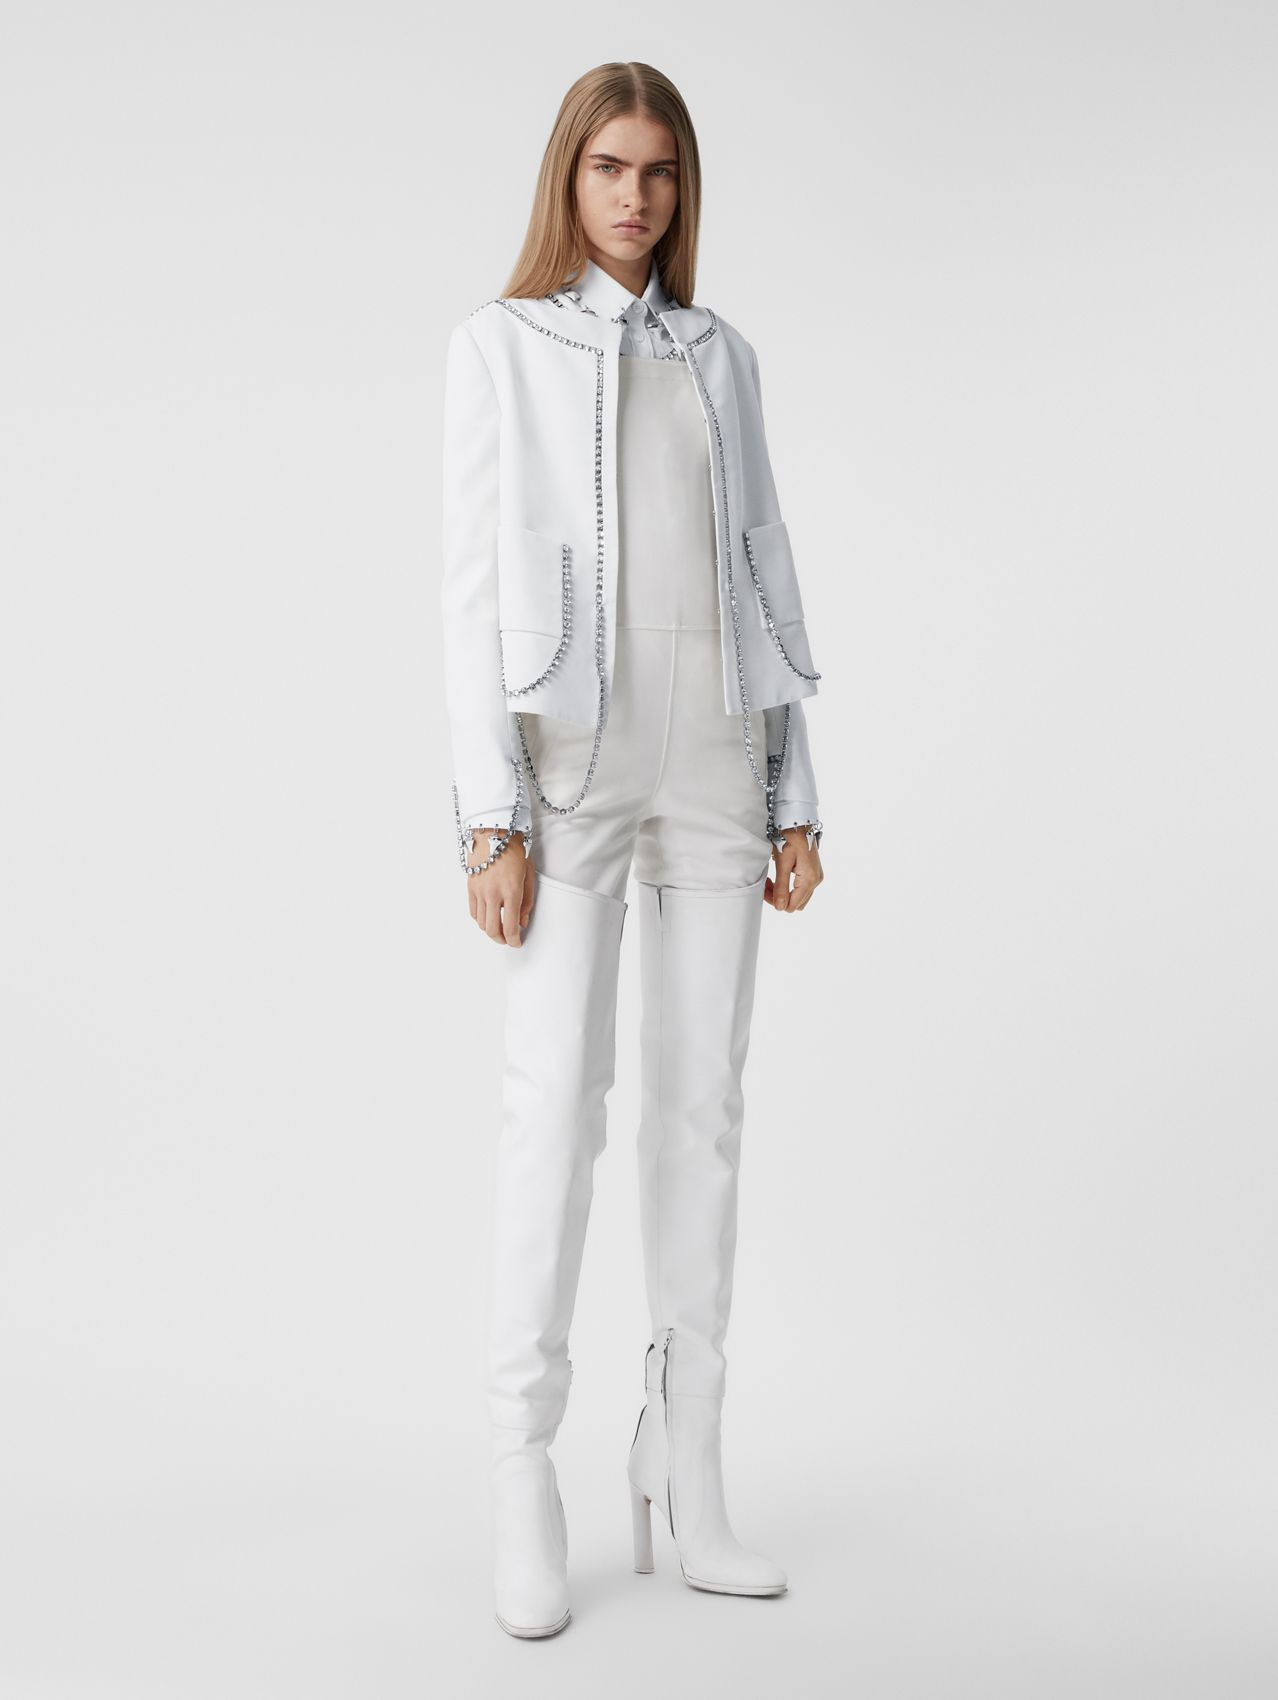 Crystal Chain Detail Technical Wool Jacket in Optic White